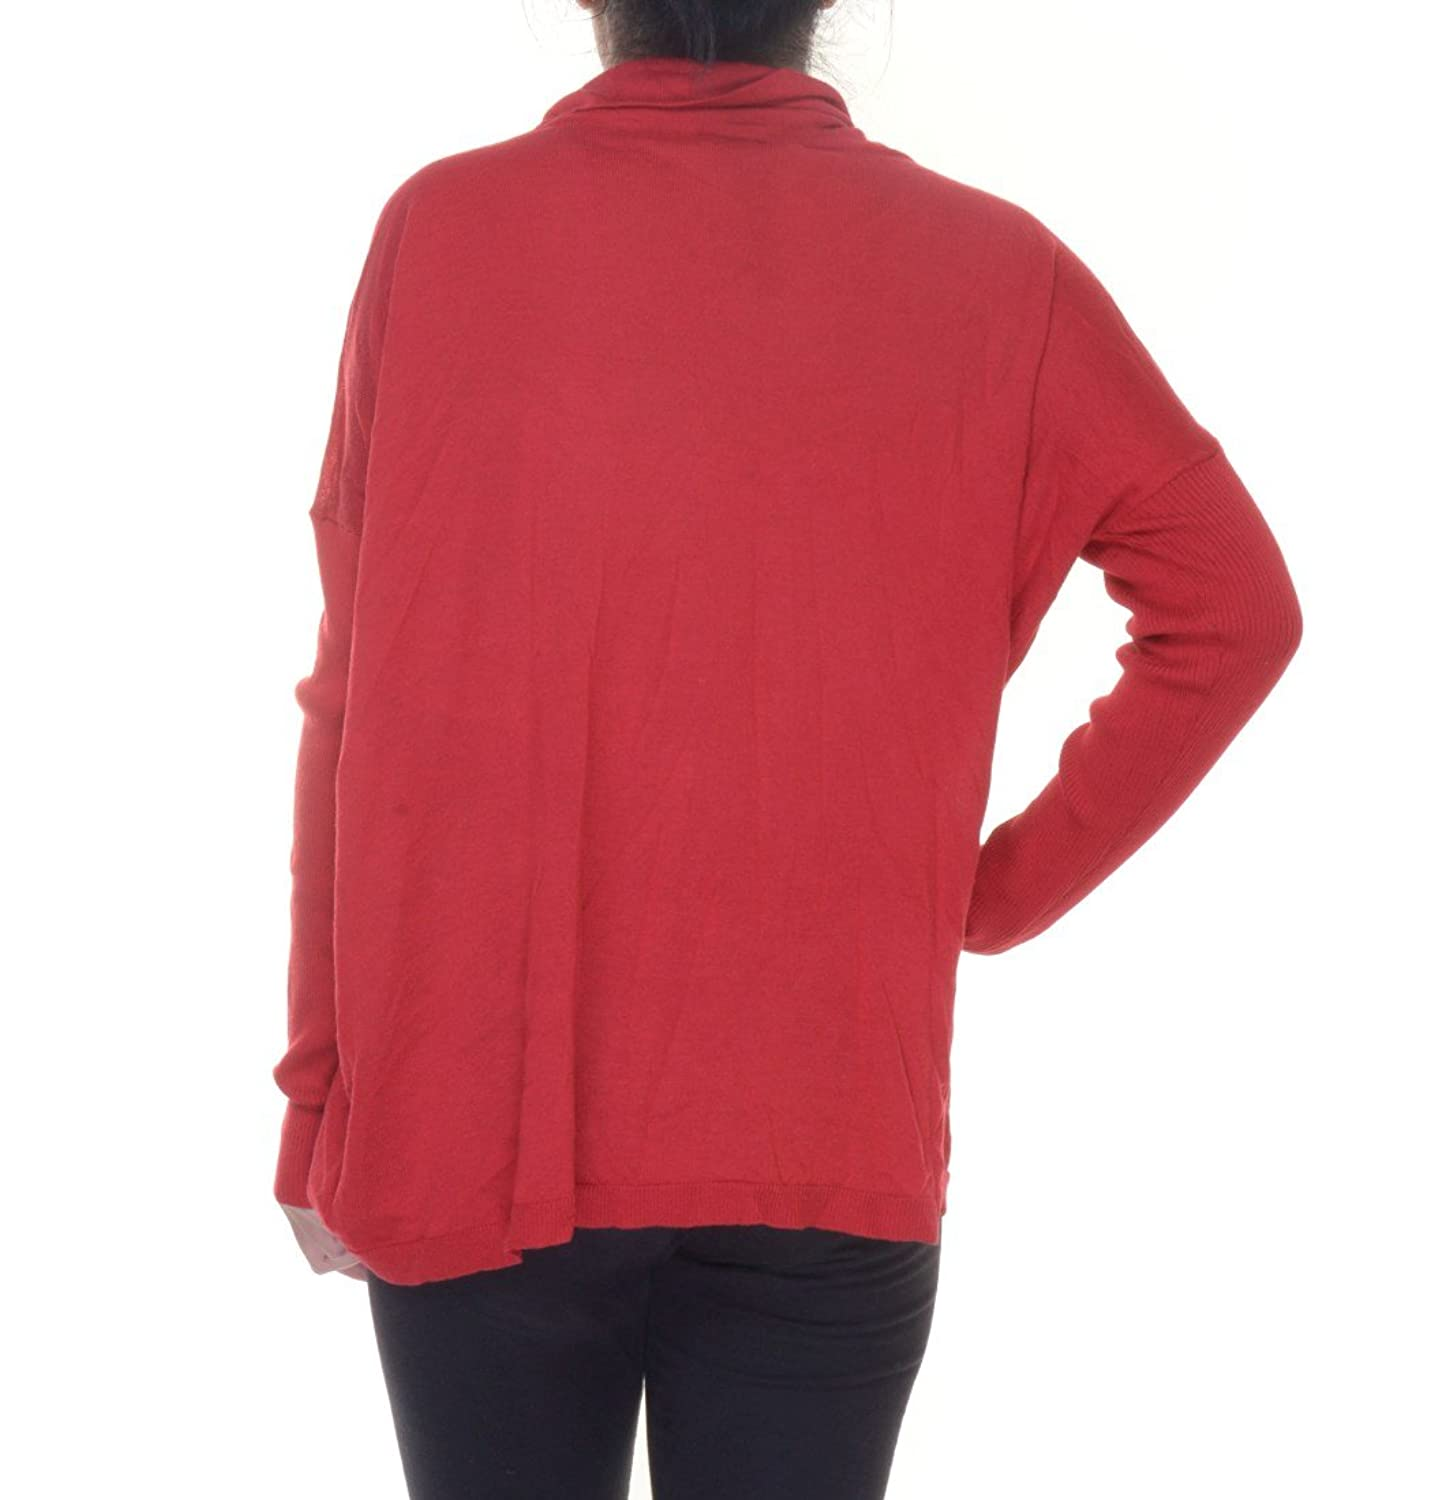 Ralph Lauren Cowl-Neck Sweater Size L